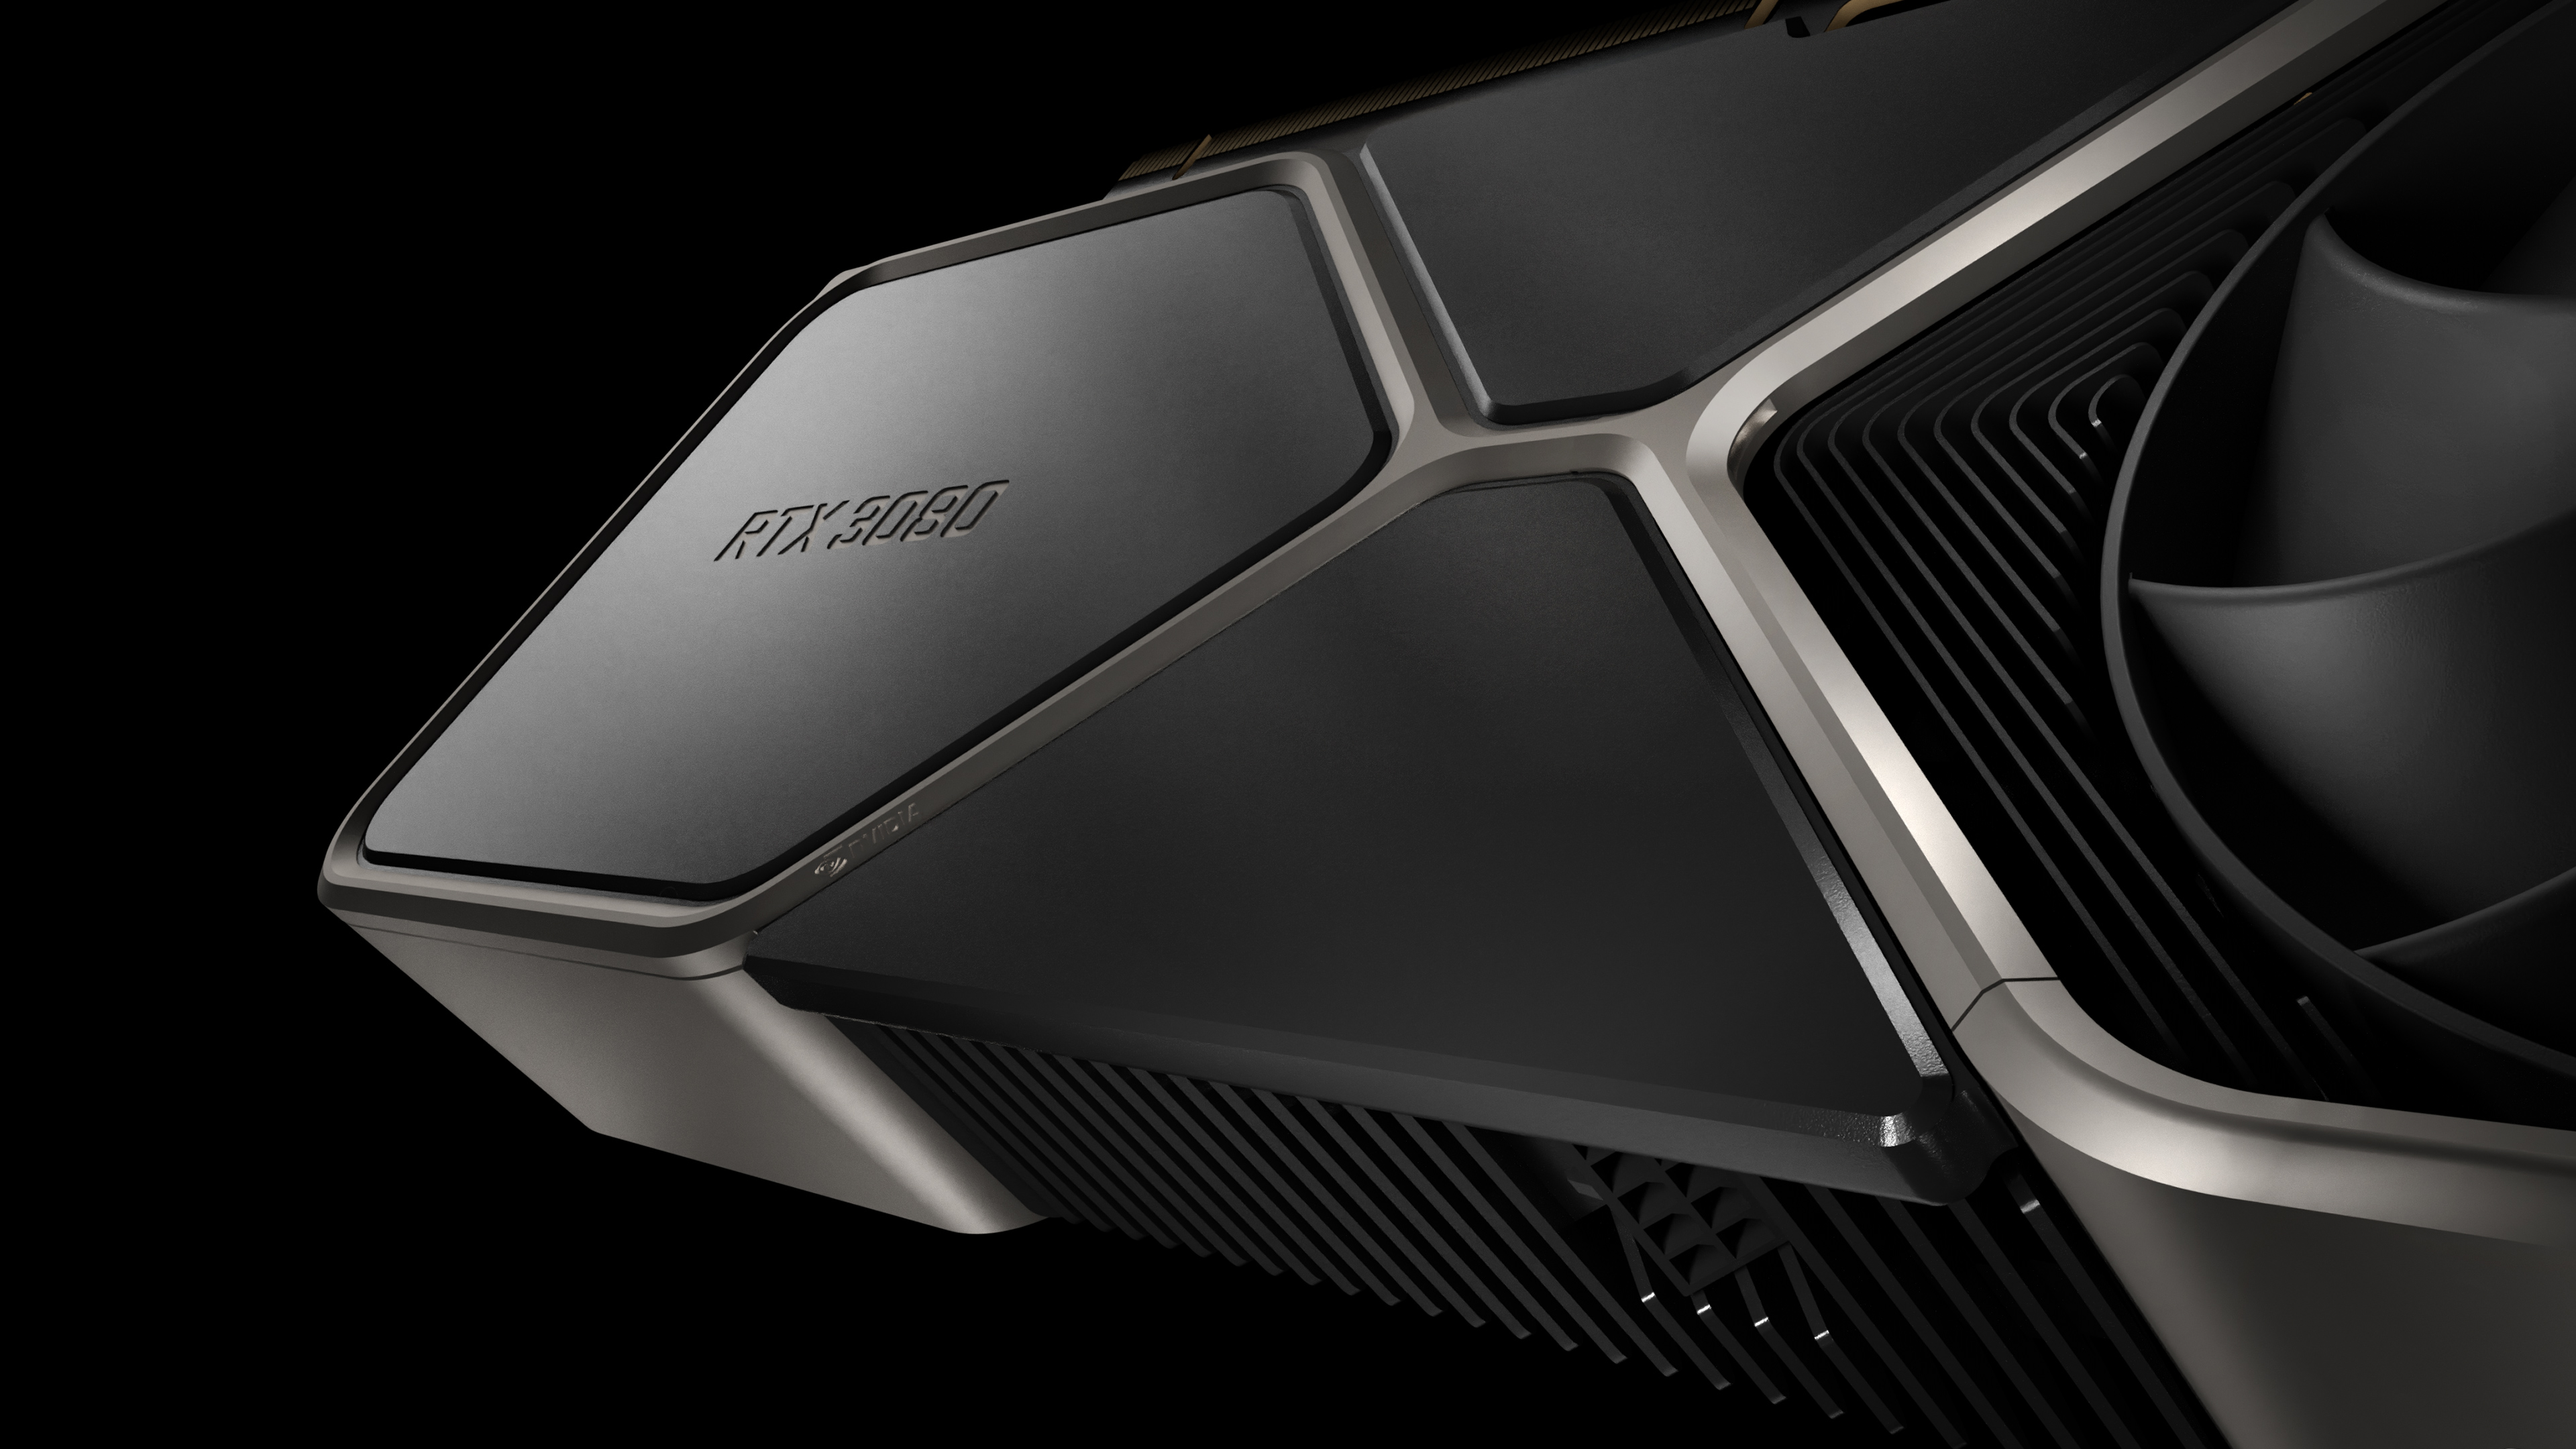 Crypto Miners Could Flock To The Nvidia Rtx 3080 Leaving Gamers Out In The Cold Techradar Palit rtx 3070 gaming pro oc в майнинге = 63 mh на 135w. crypto miners could flock to the nvidia